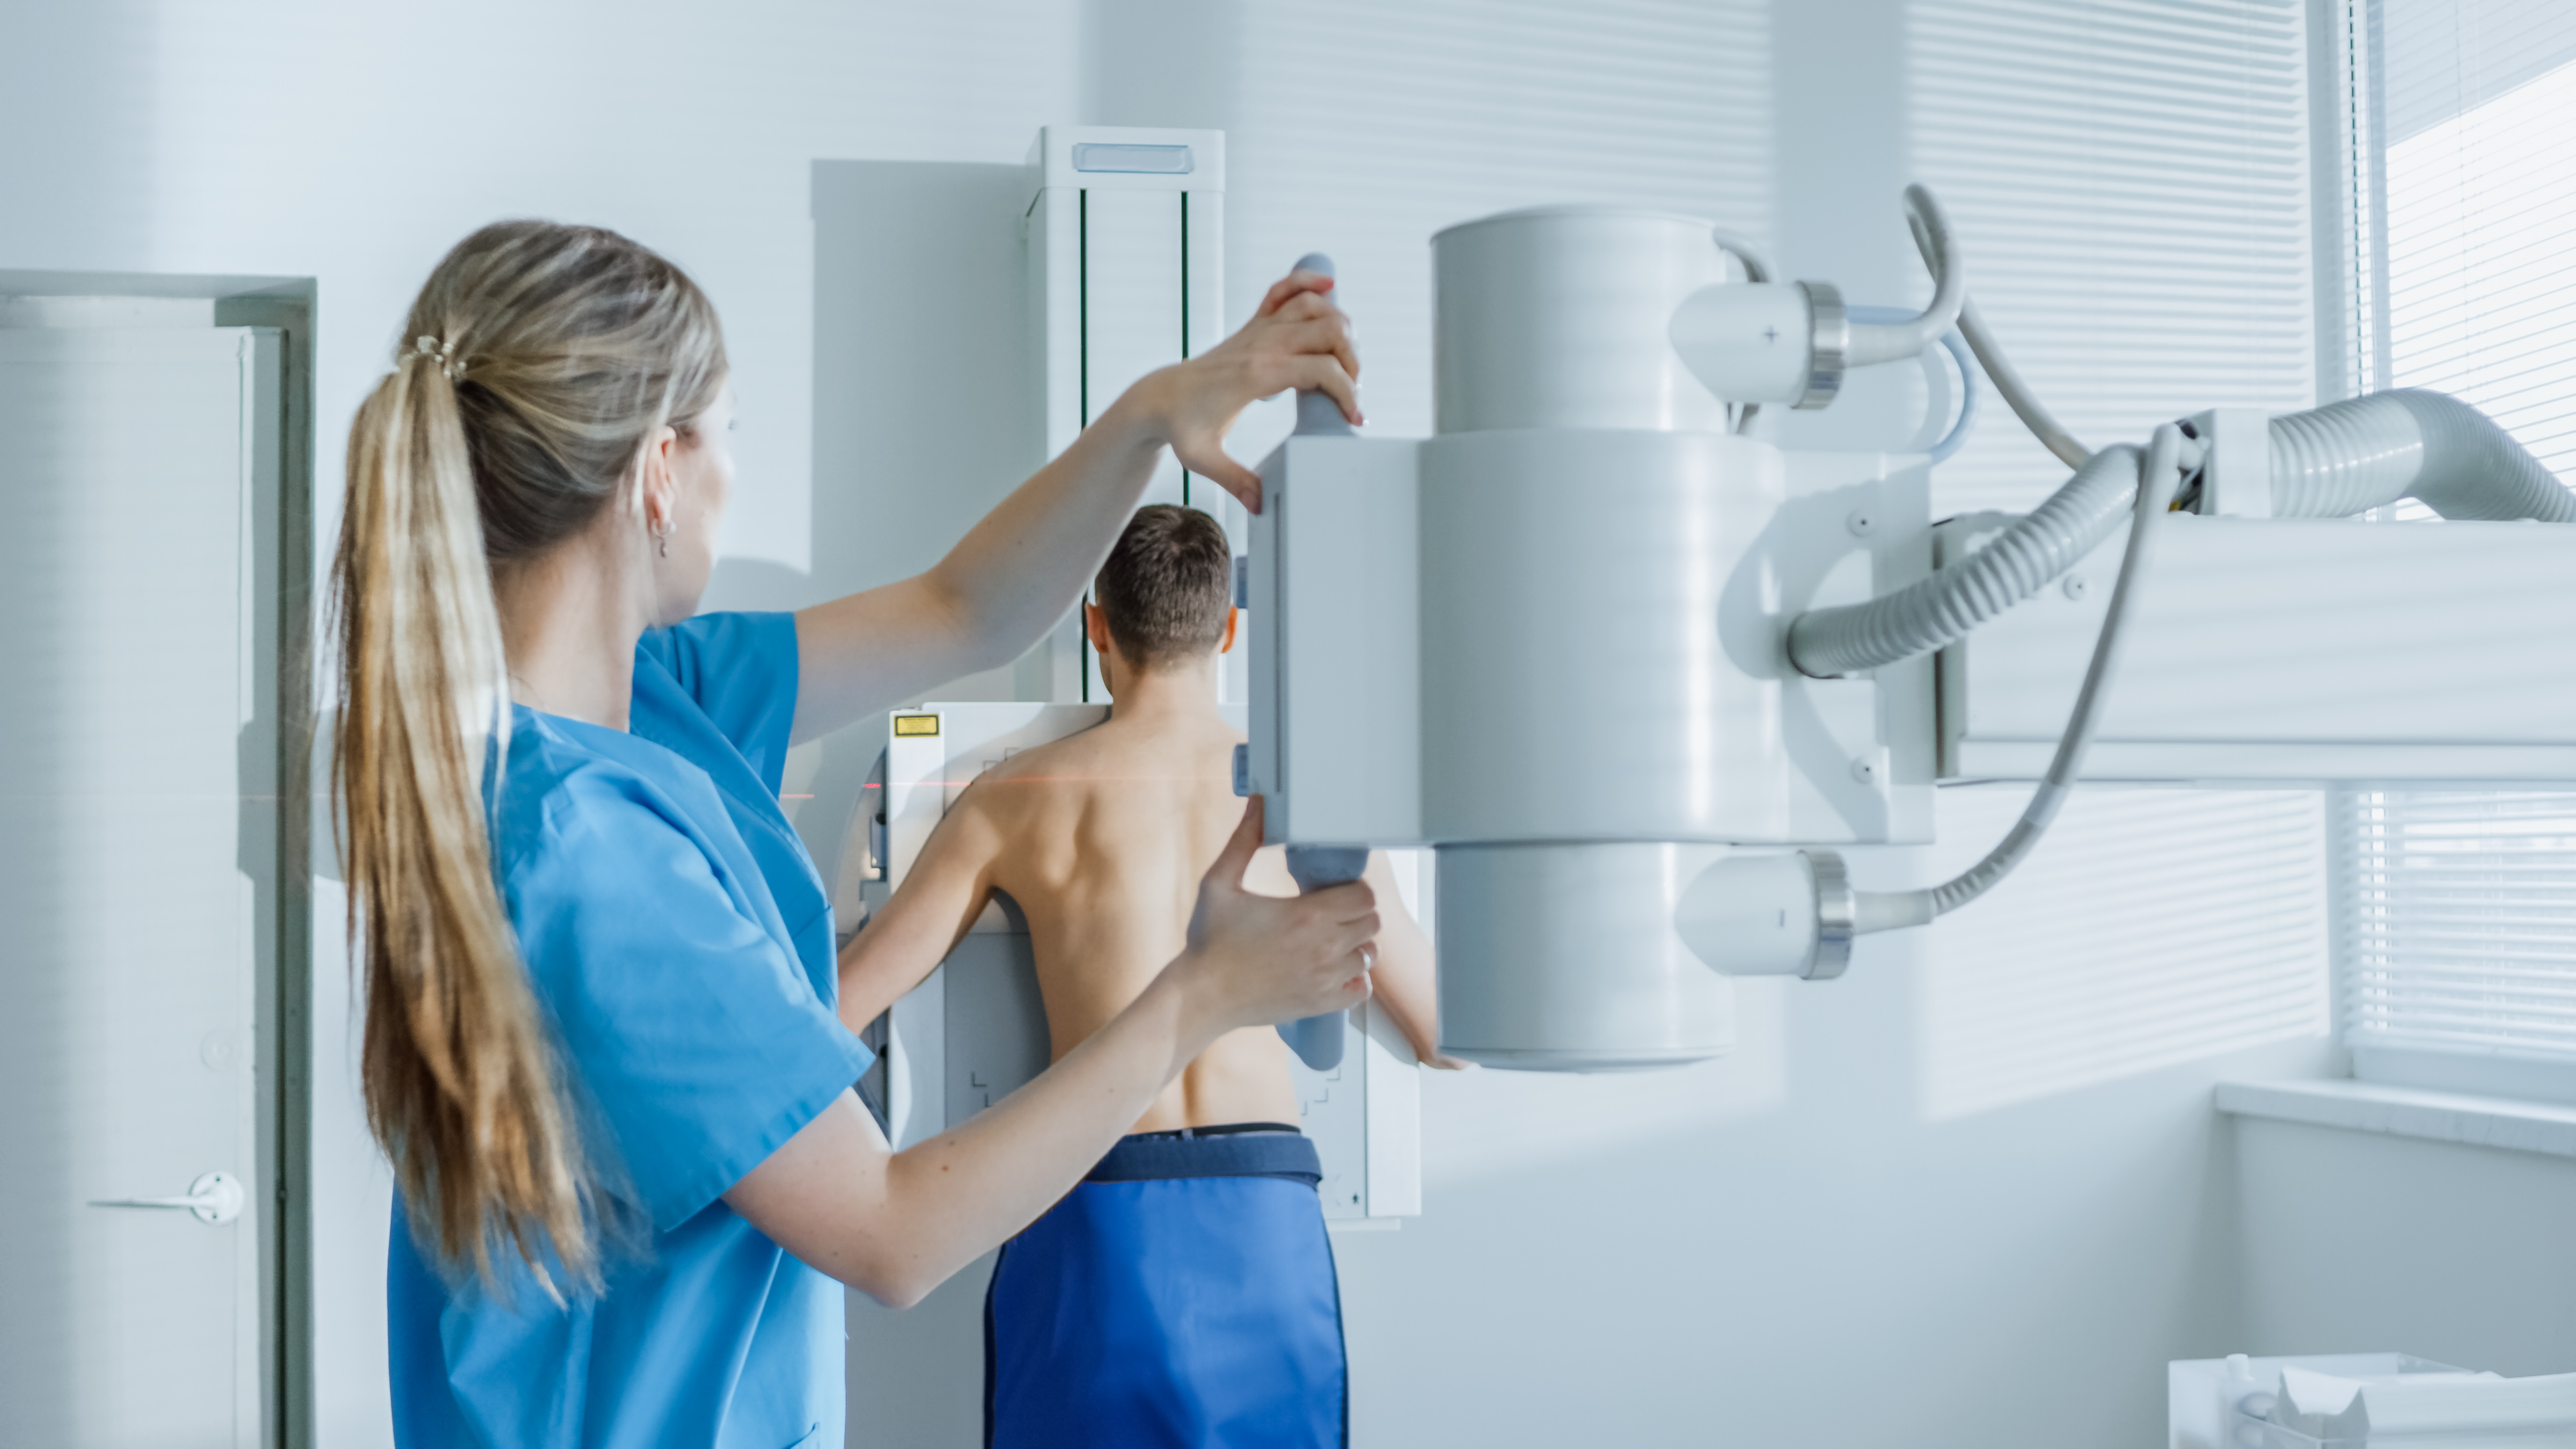 In the Hospital, Man Standing Face Against the Wall While Medical Technician Adjusts X-Ray Machine For Scanning. Scanning for Fractures, Broken Limbs, Chest, Cancer or Tumor. Modern Hospital with Technologically Advanced Medical Equipment.